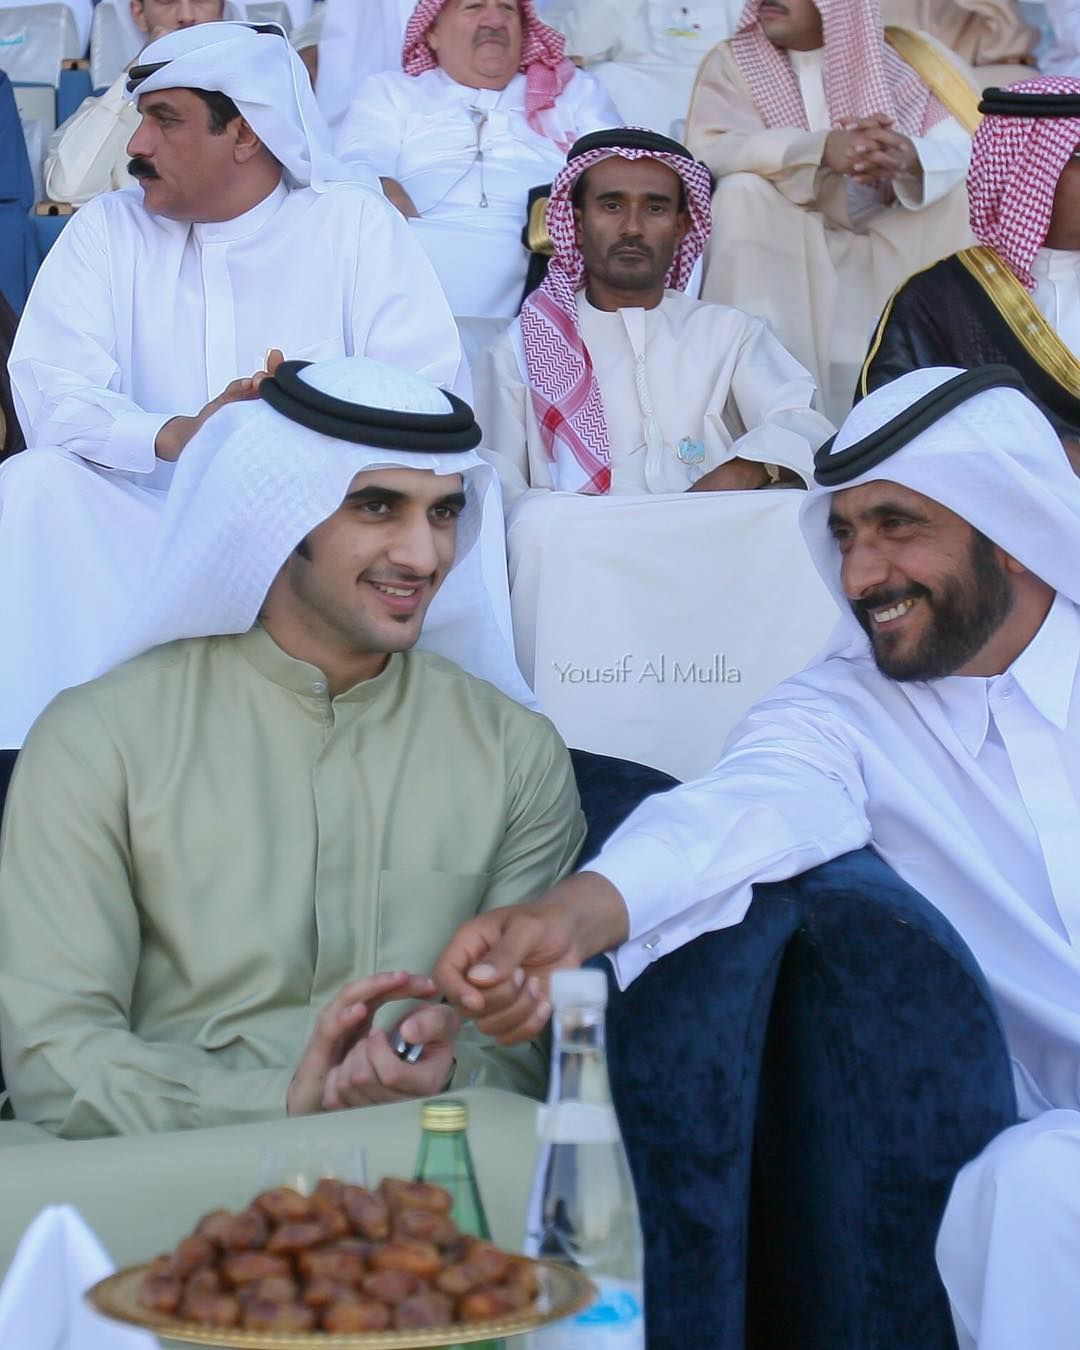 Prince Hamdan Girlfriend Dies - Exploring Mars